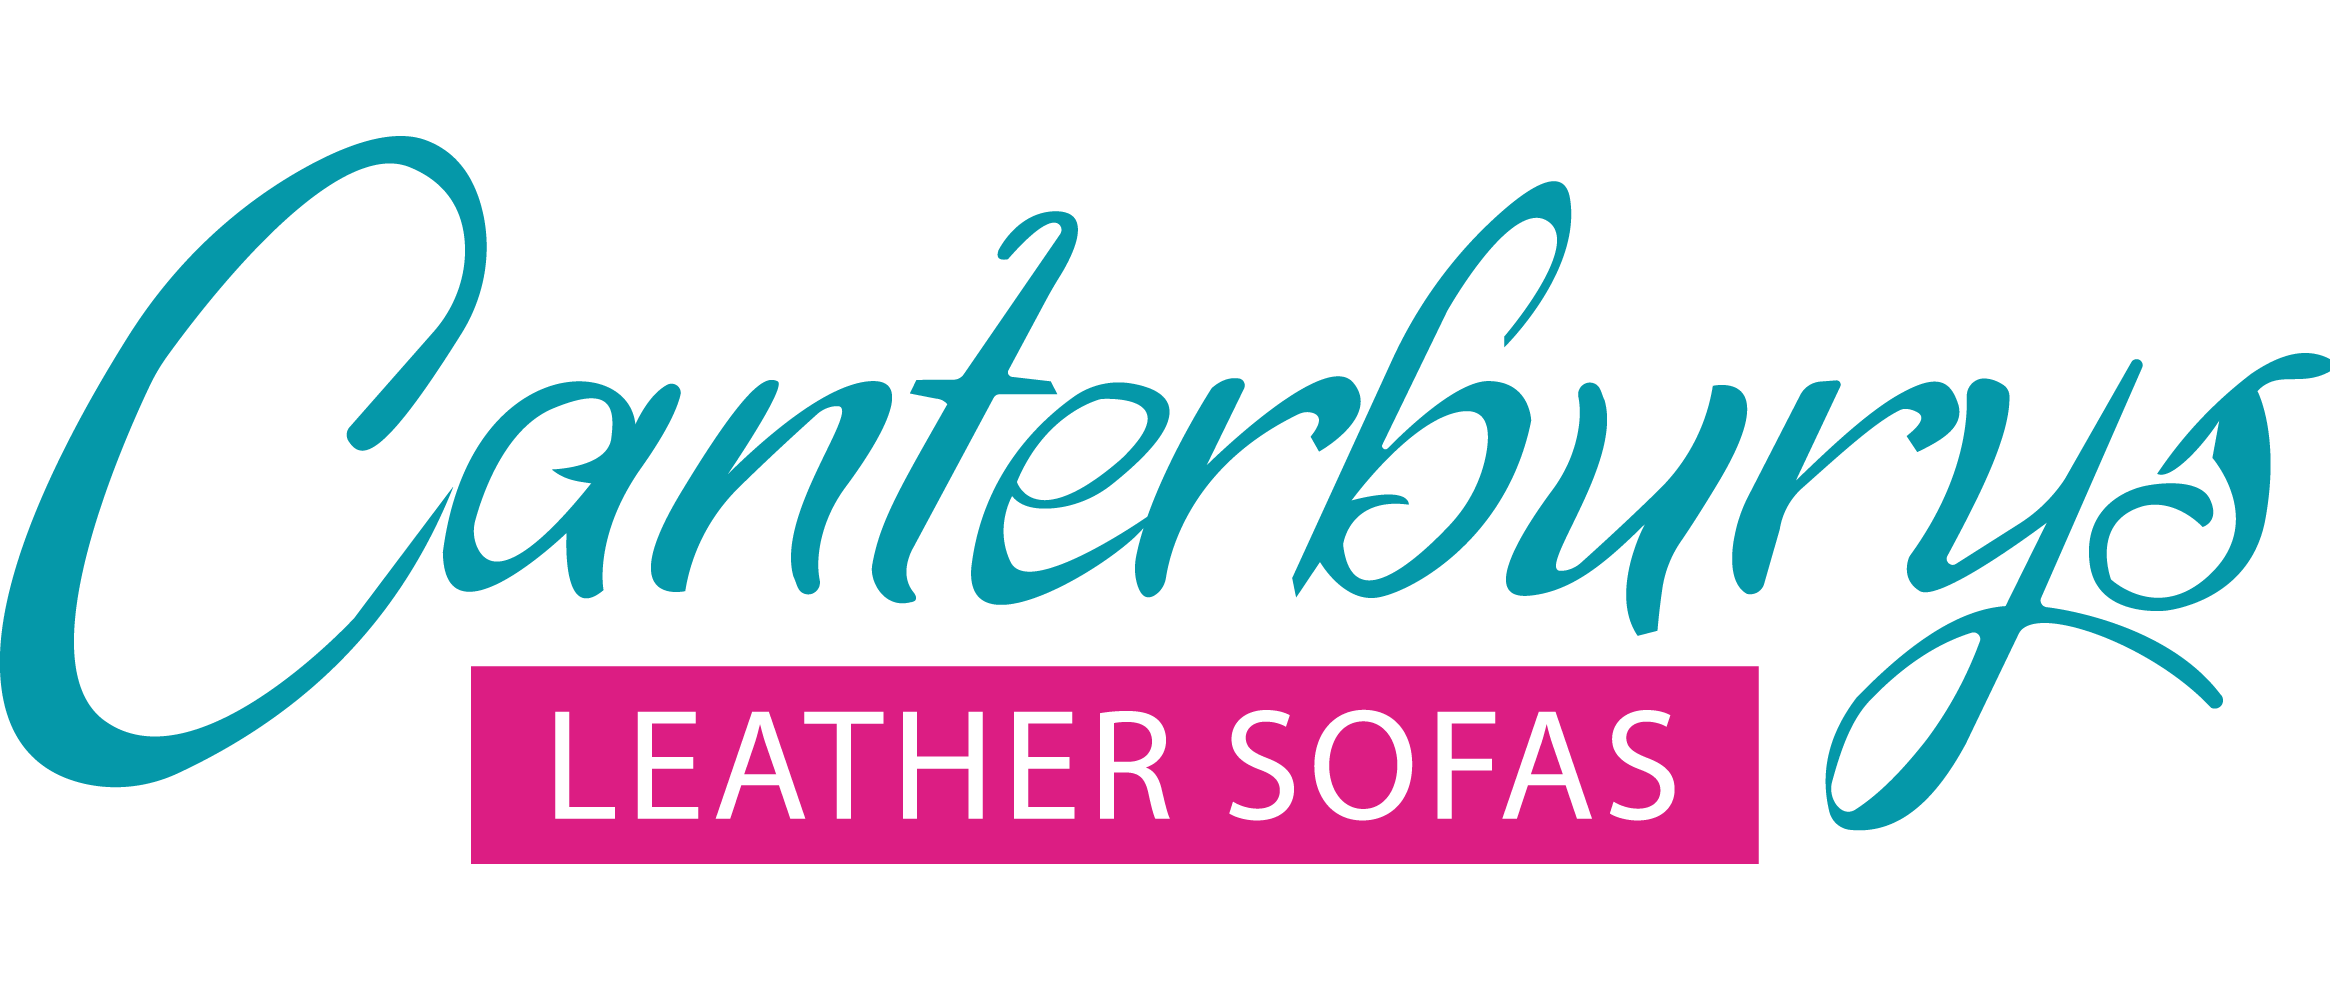 Leathersofa.co.uk